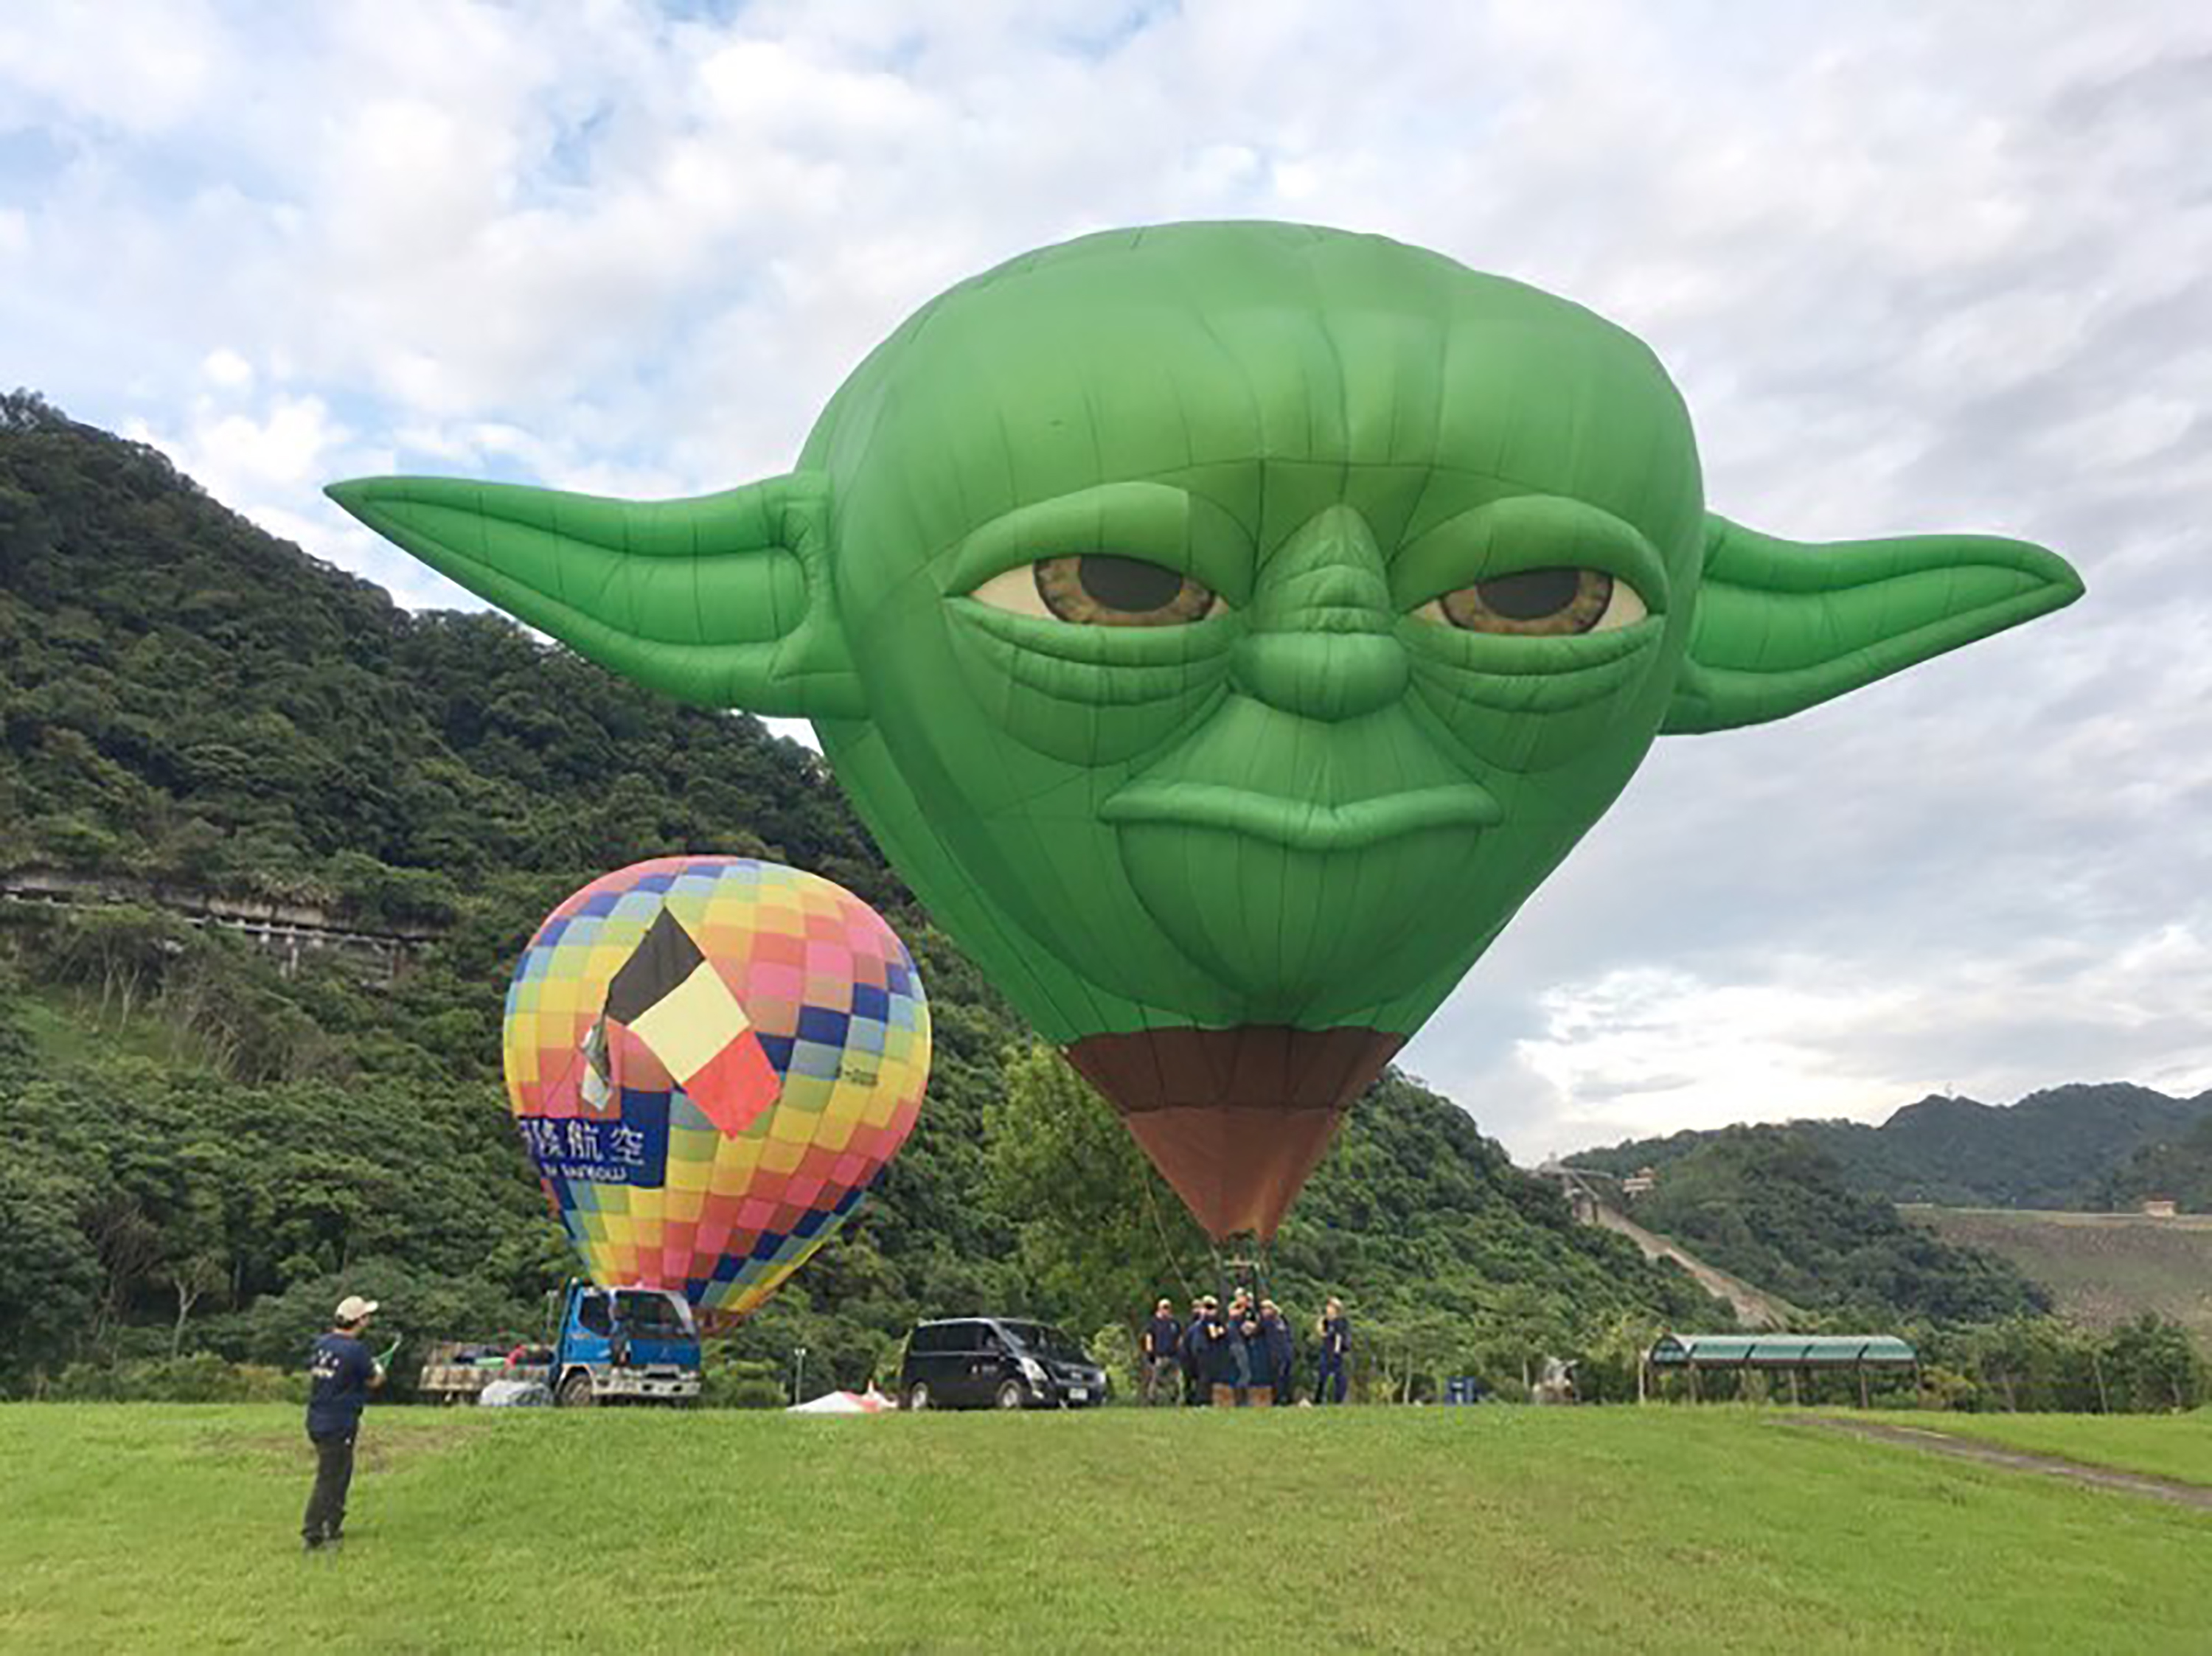 A hot air balloon at the Shimen Reservoir in Taoyuan City this year.